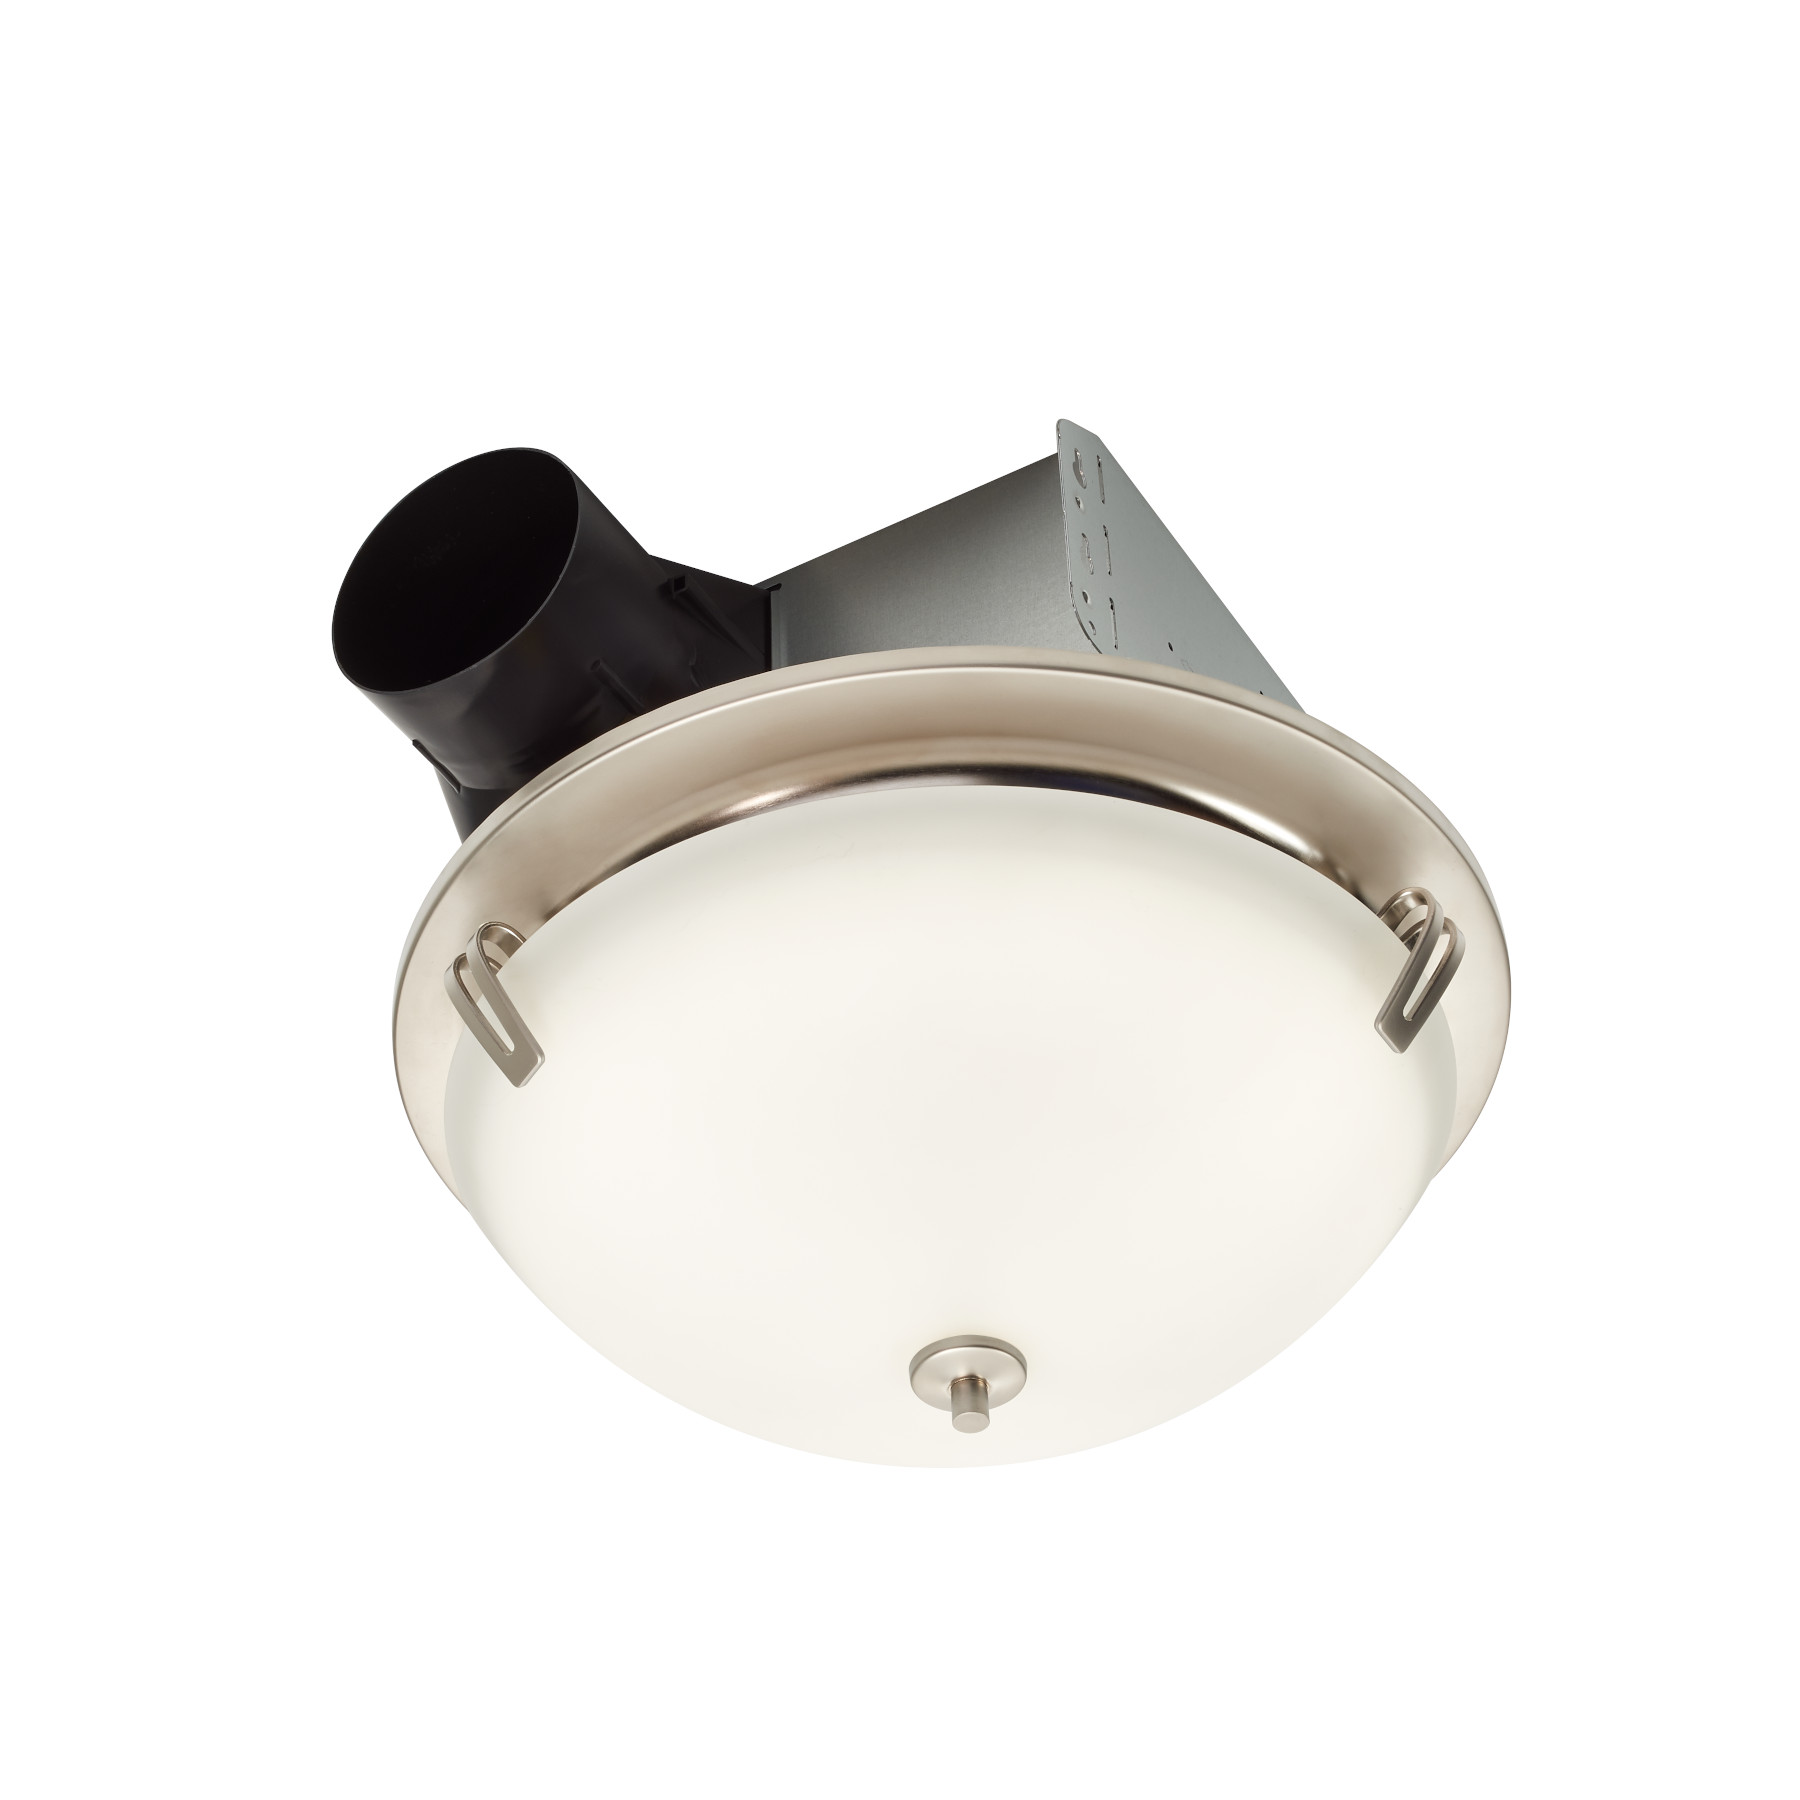 Roomside Decorative Satin Nickel 100 CFM Ceiling Roomside Install Bathroom Exhaust Fan w/ Light and Globe ENERGY STAR®